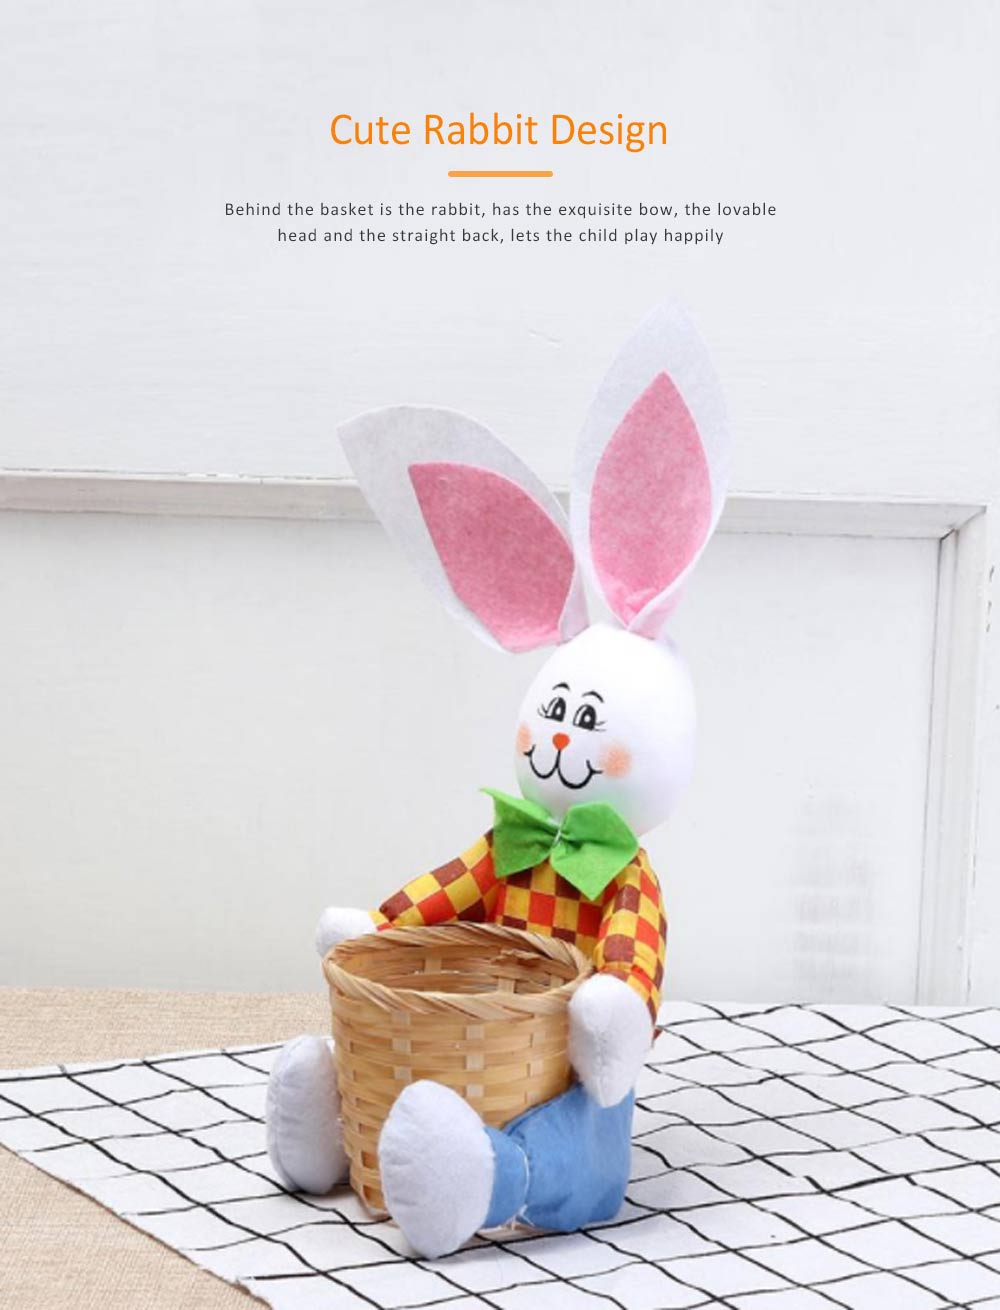 Easter Bunny DIY Handmade Basket, Bamboo Woven Rattan Weaving Basket with Cartoon Design for Storage 2